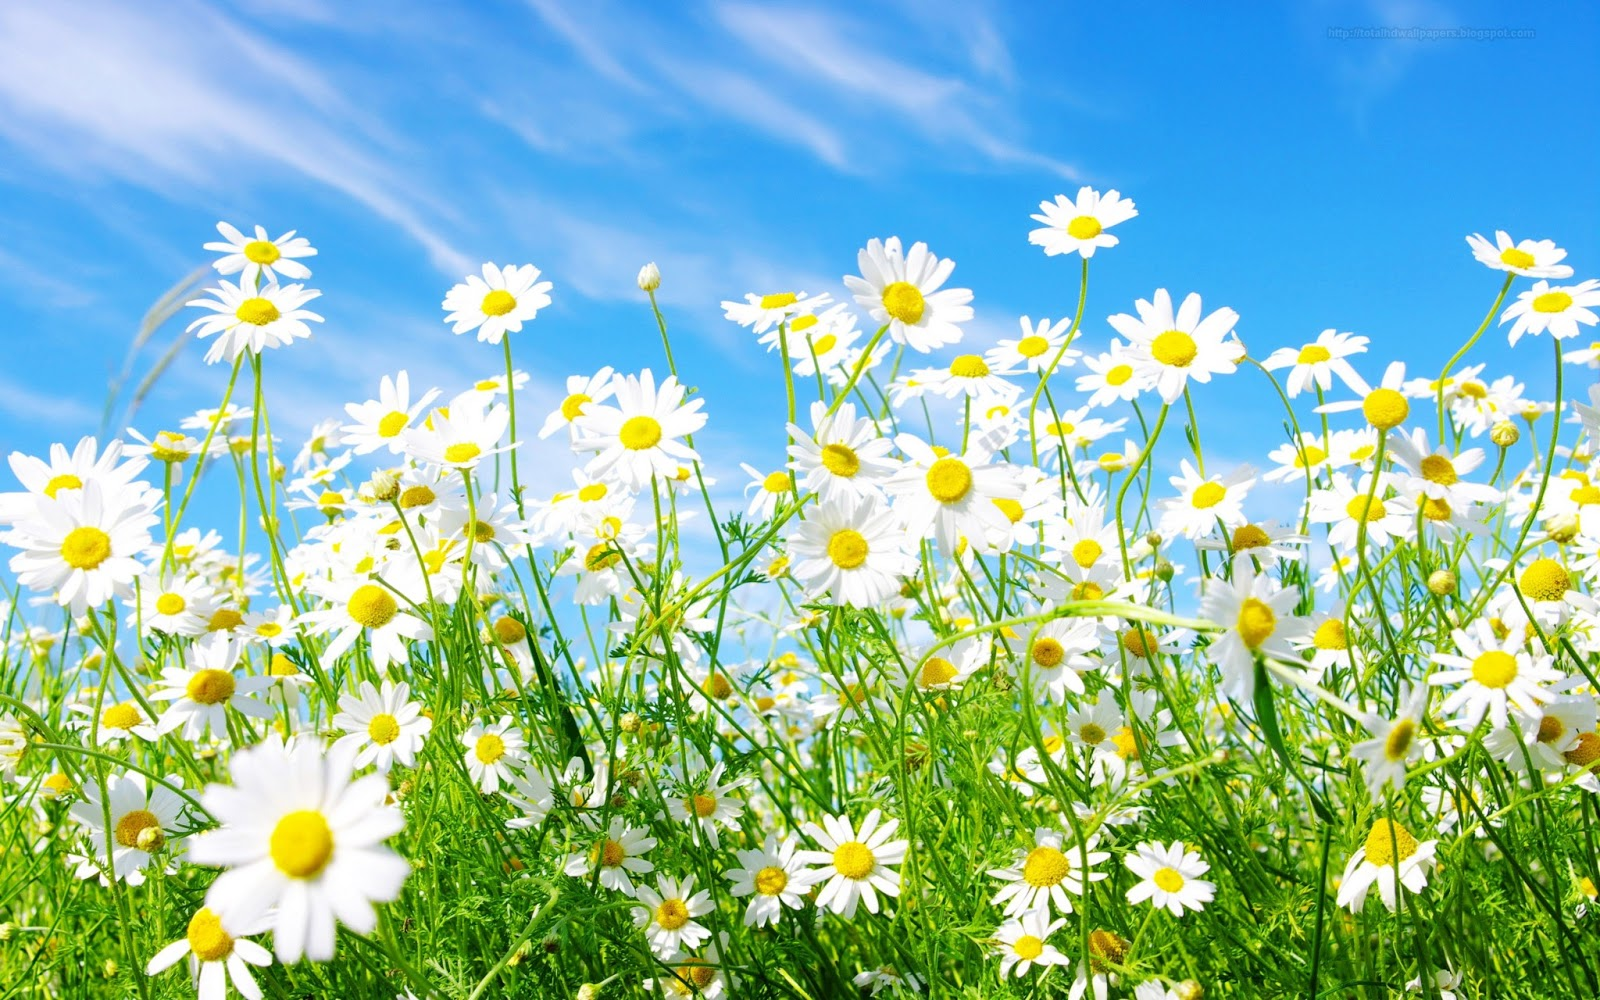 Daisy wallpapers hd